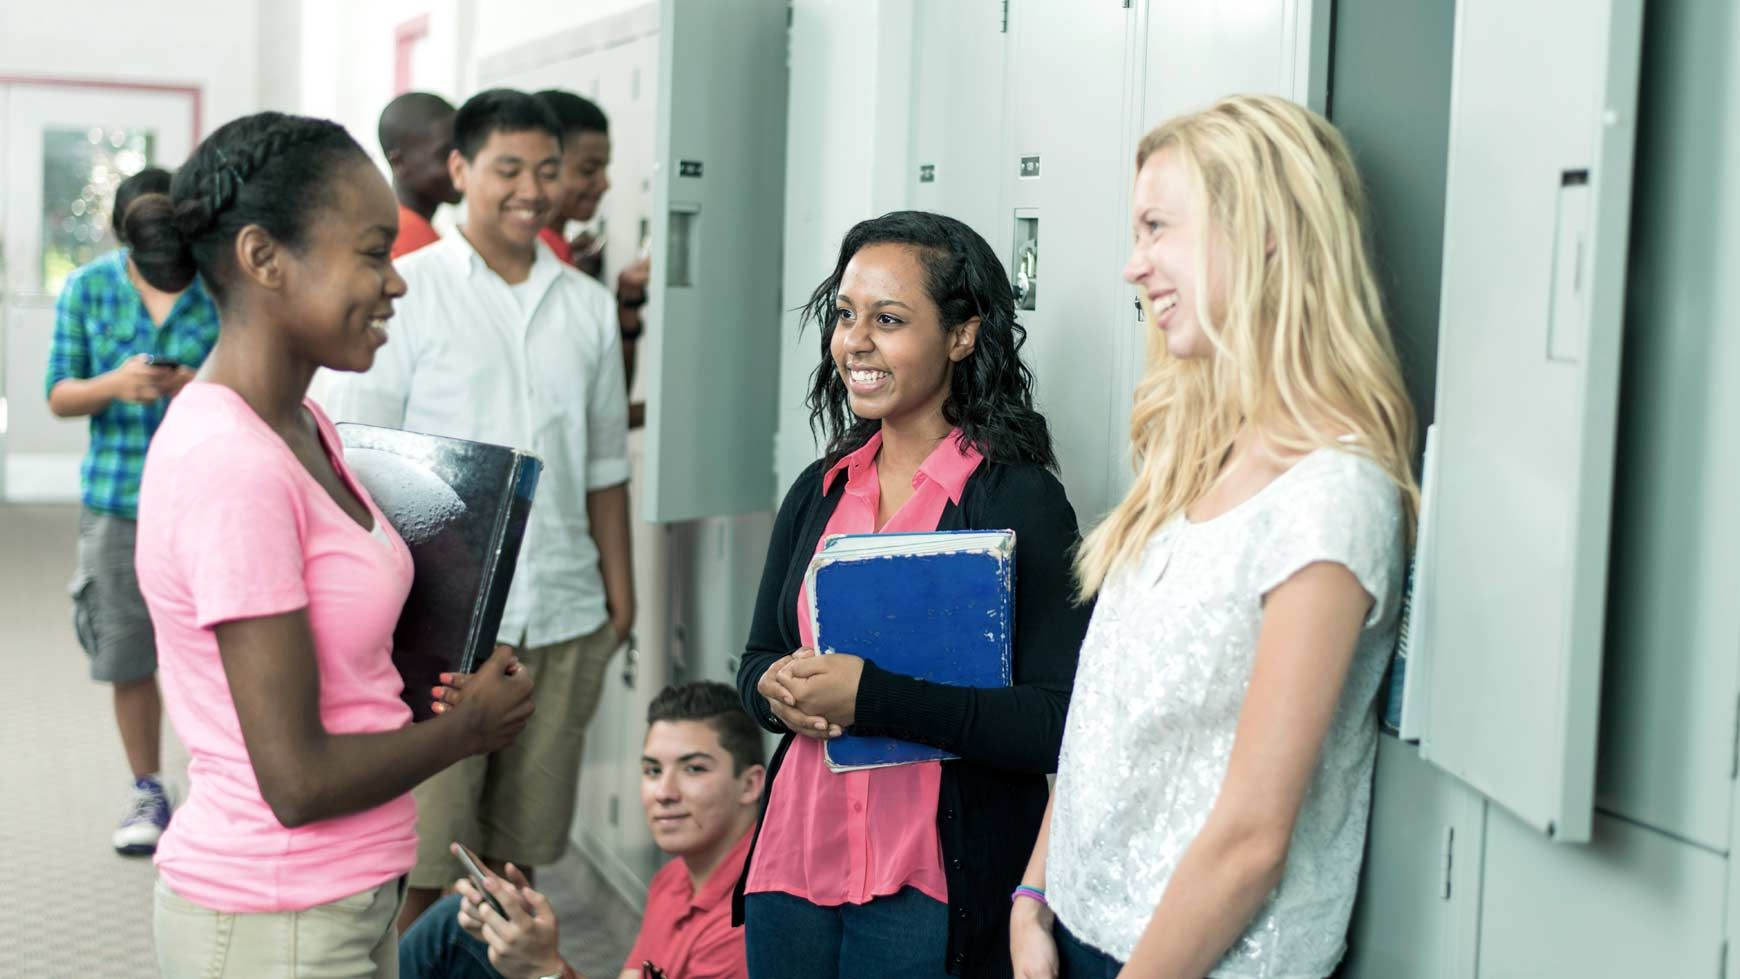 the role played by socialisation in It is during socialisation that individuals learn the values and norms that play such an important part in shaping human behaviour socialisation provides the skills and habits necessary for acting and participating within one's society.